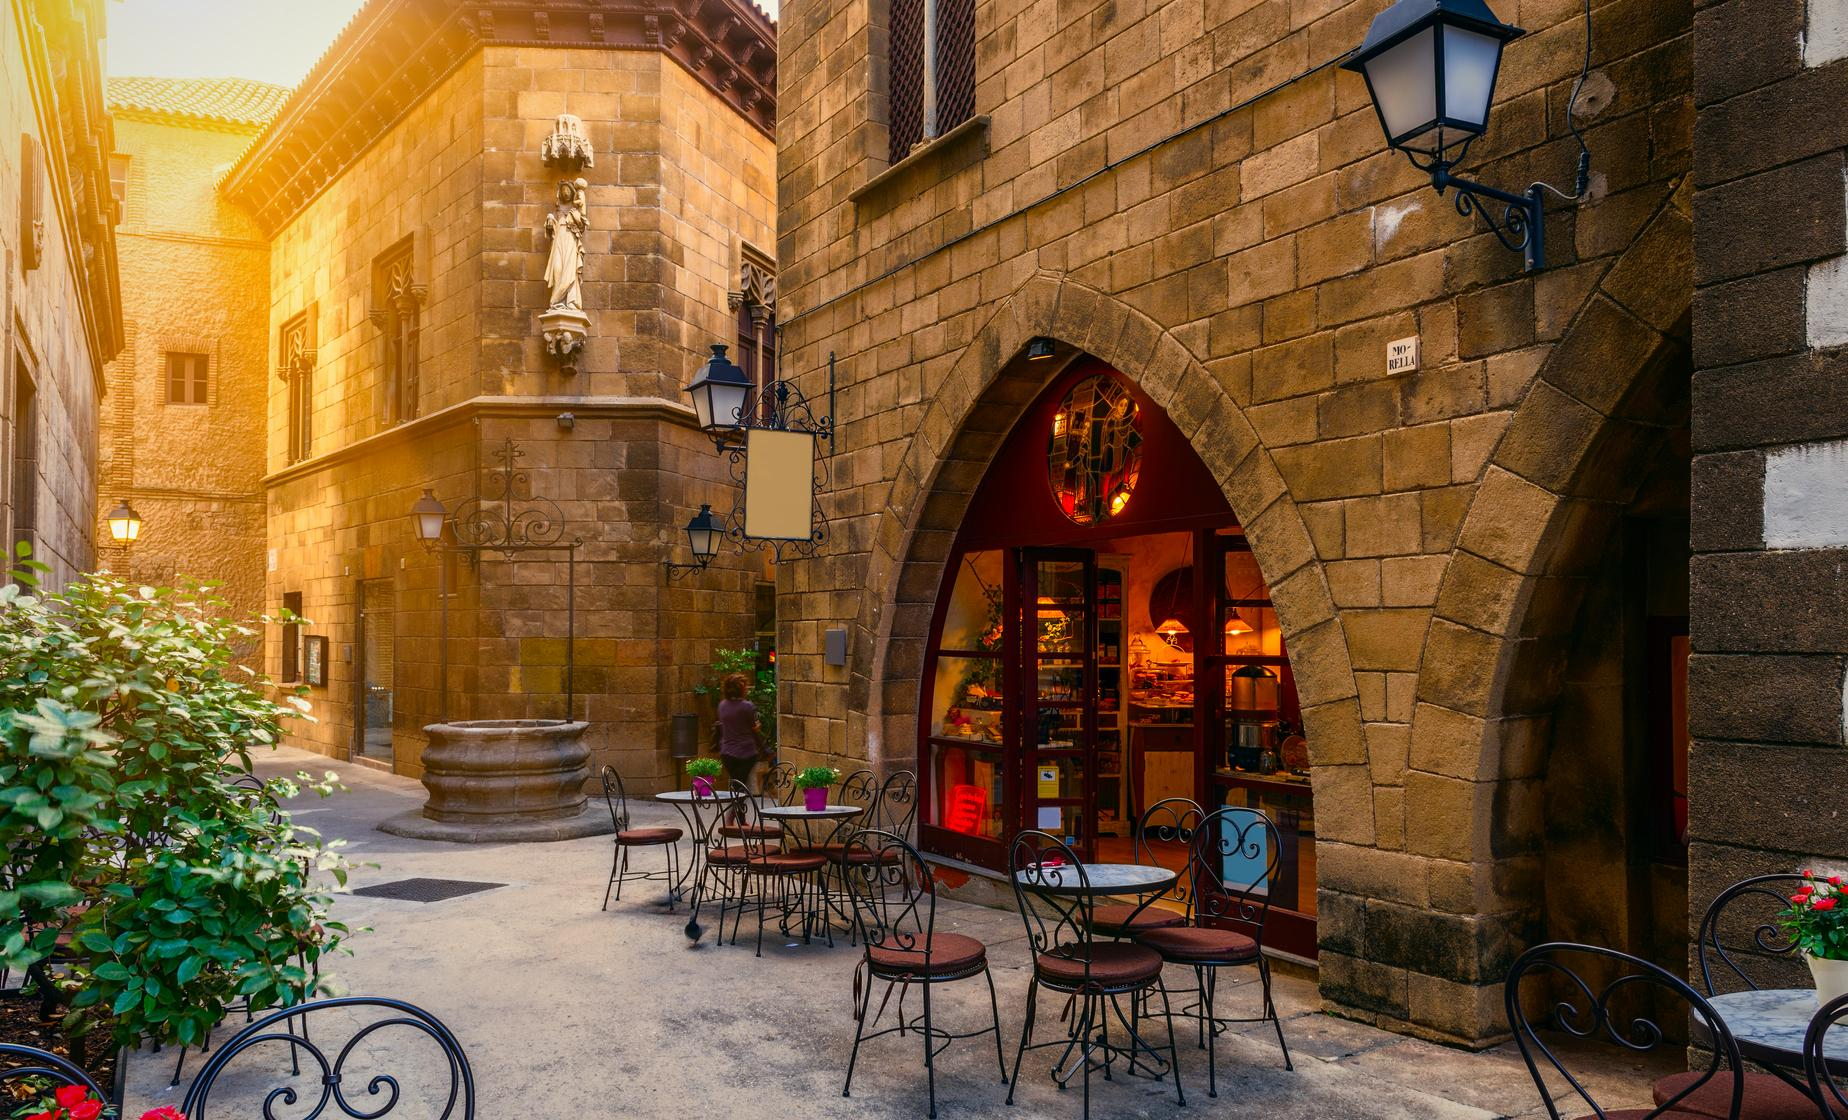 Barcelona Highlights and Spanish Village